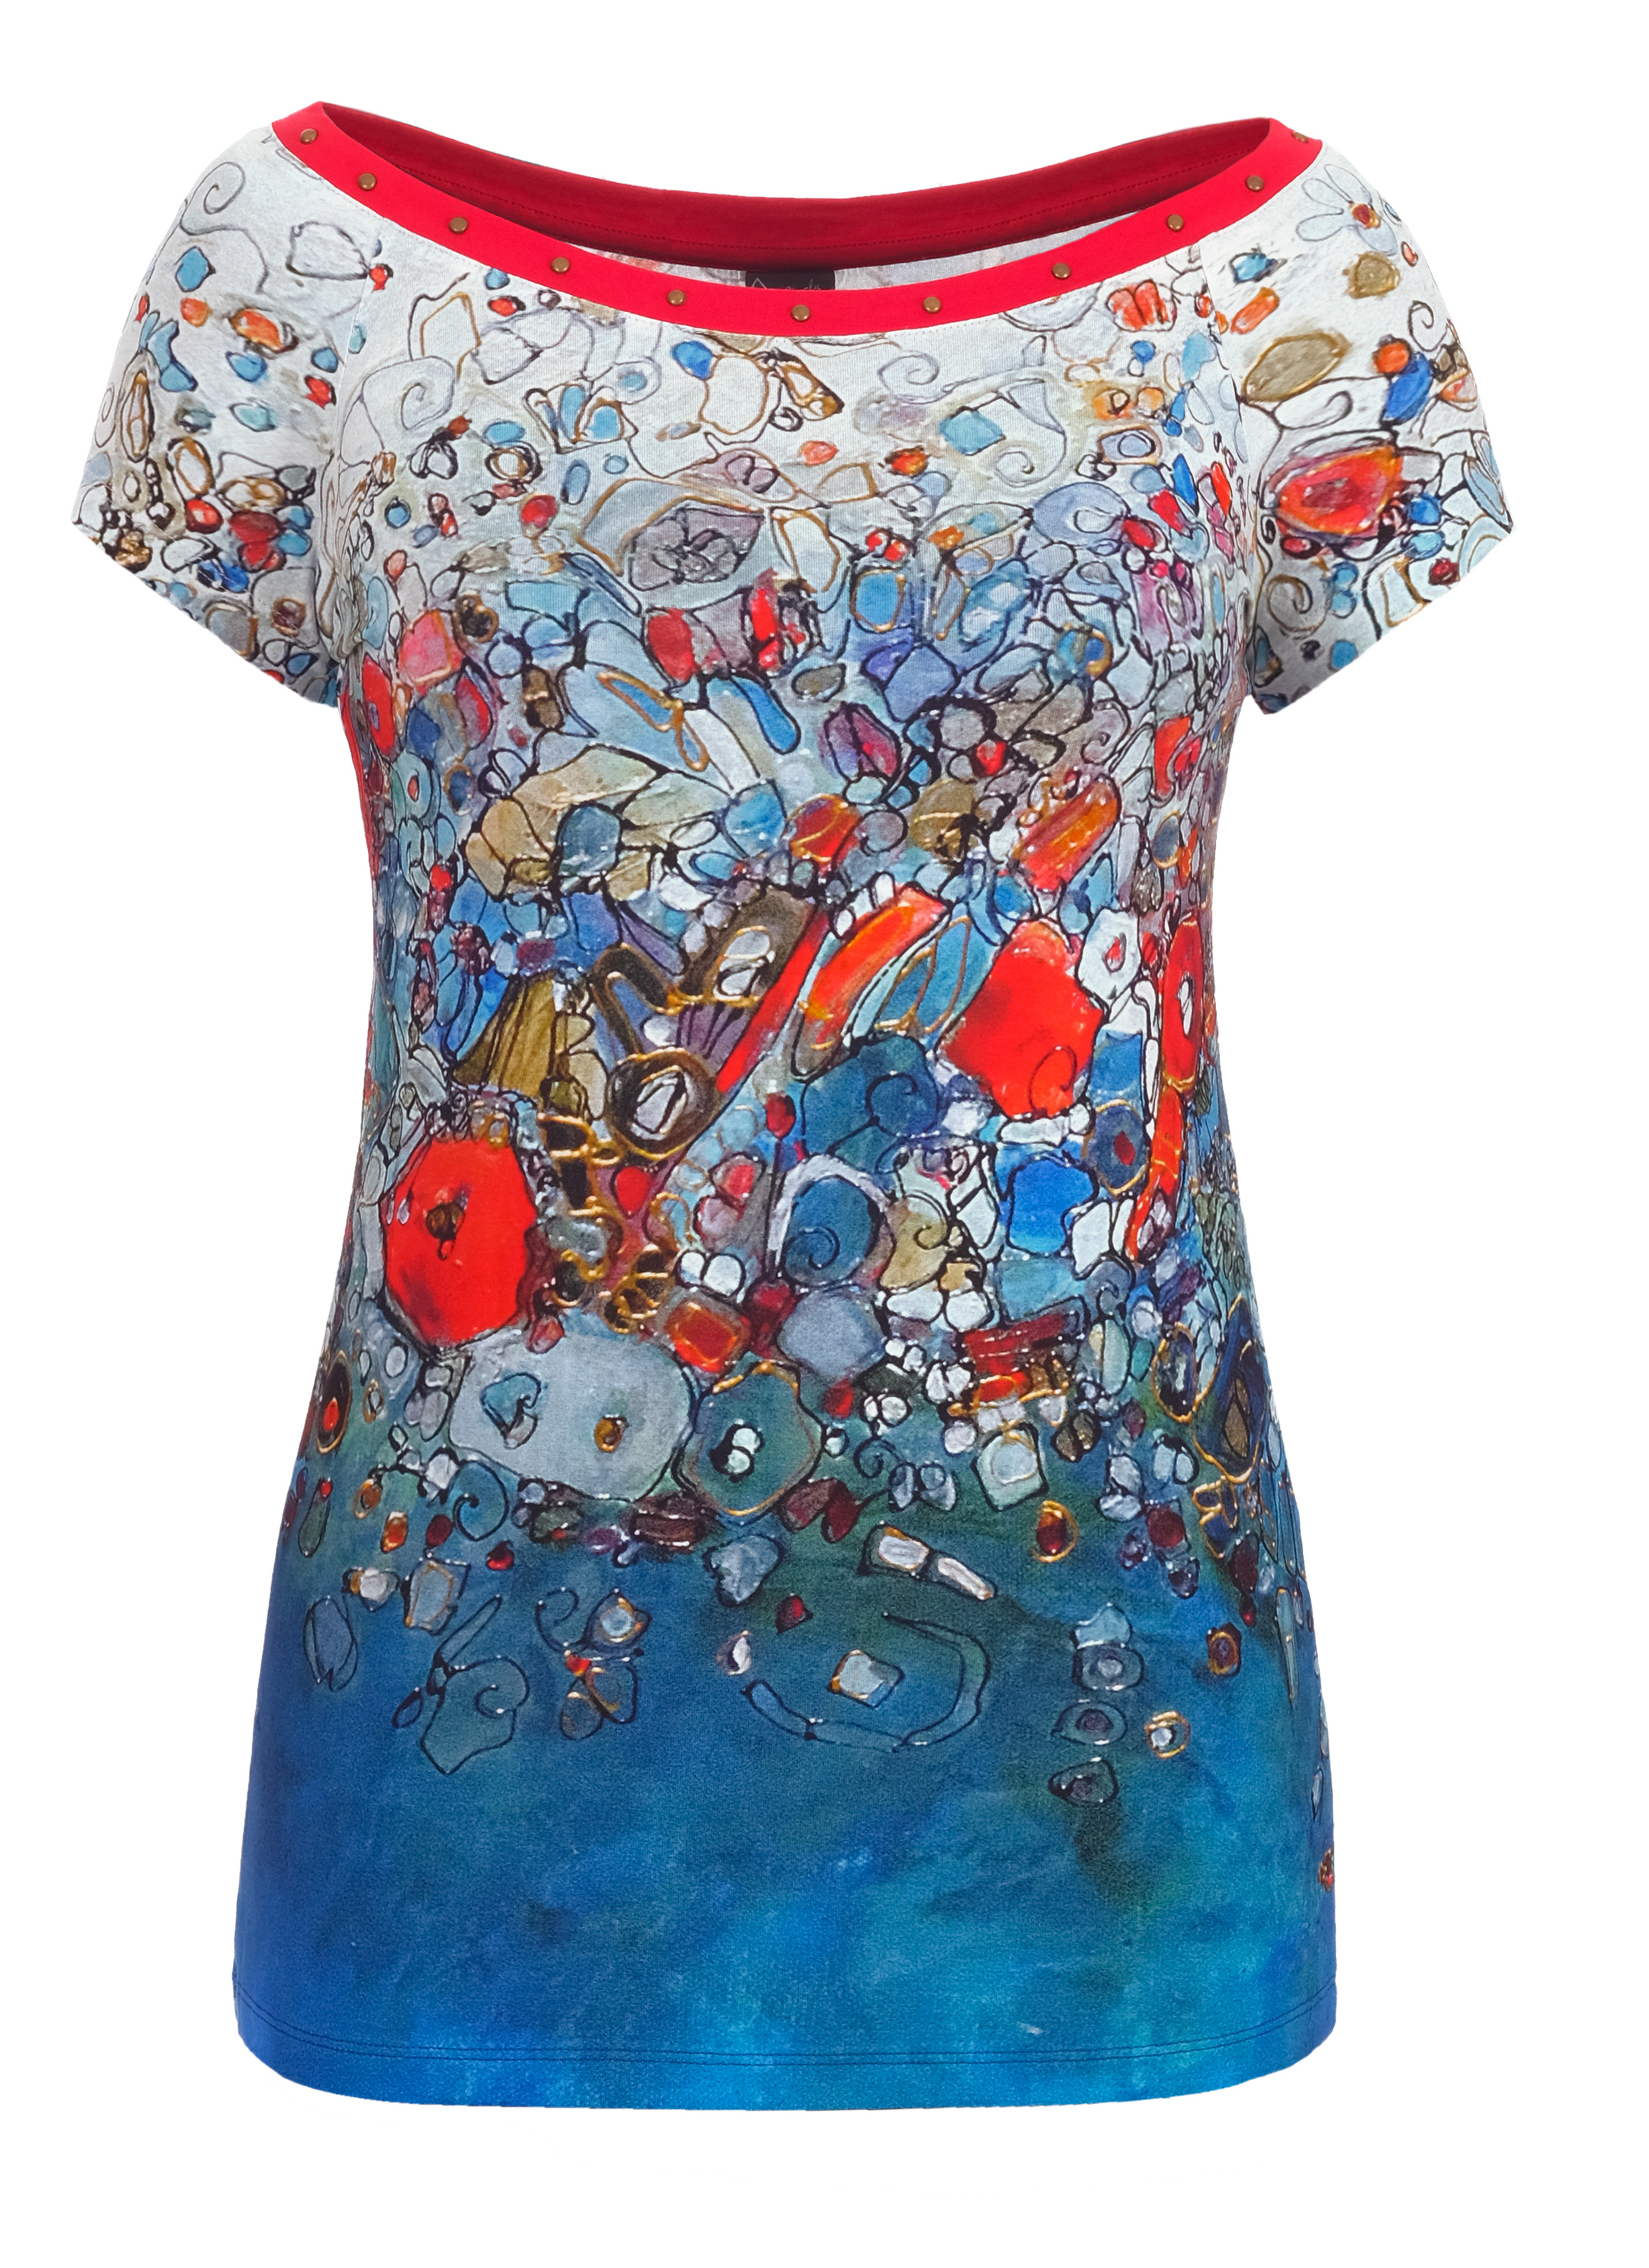 Simply Art Dolcezza: Stunning Red New Magma Abstract art Jeweled Neck Top Dolcezza_SimplyArt_21730